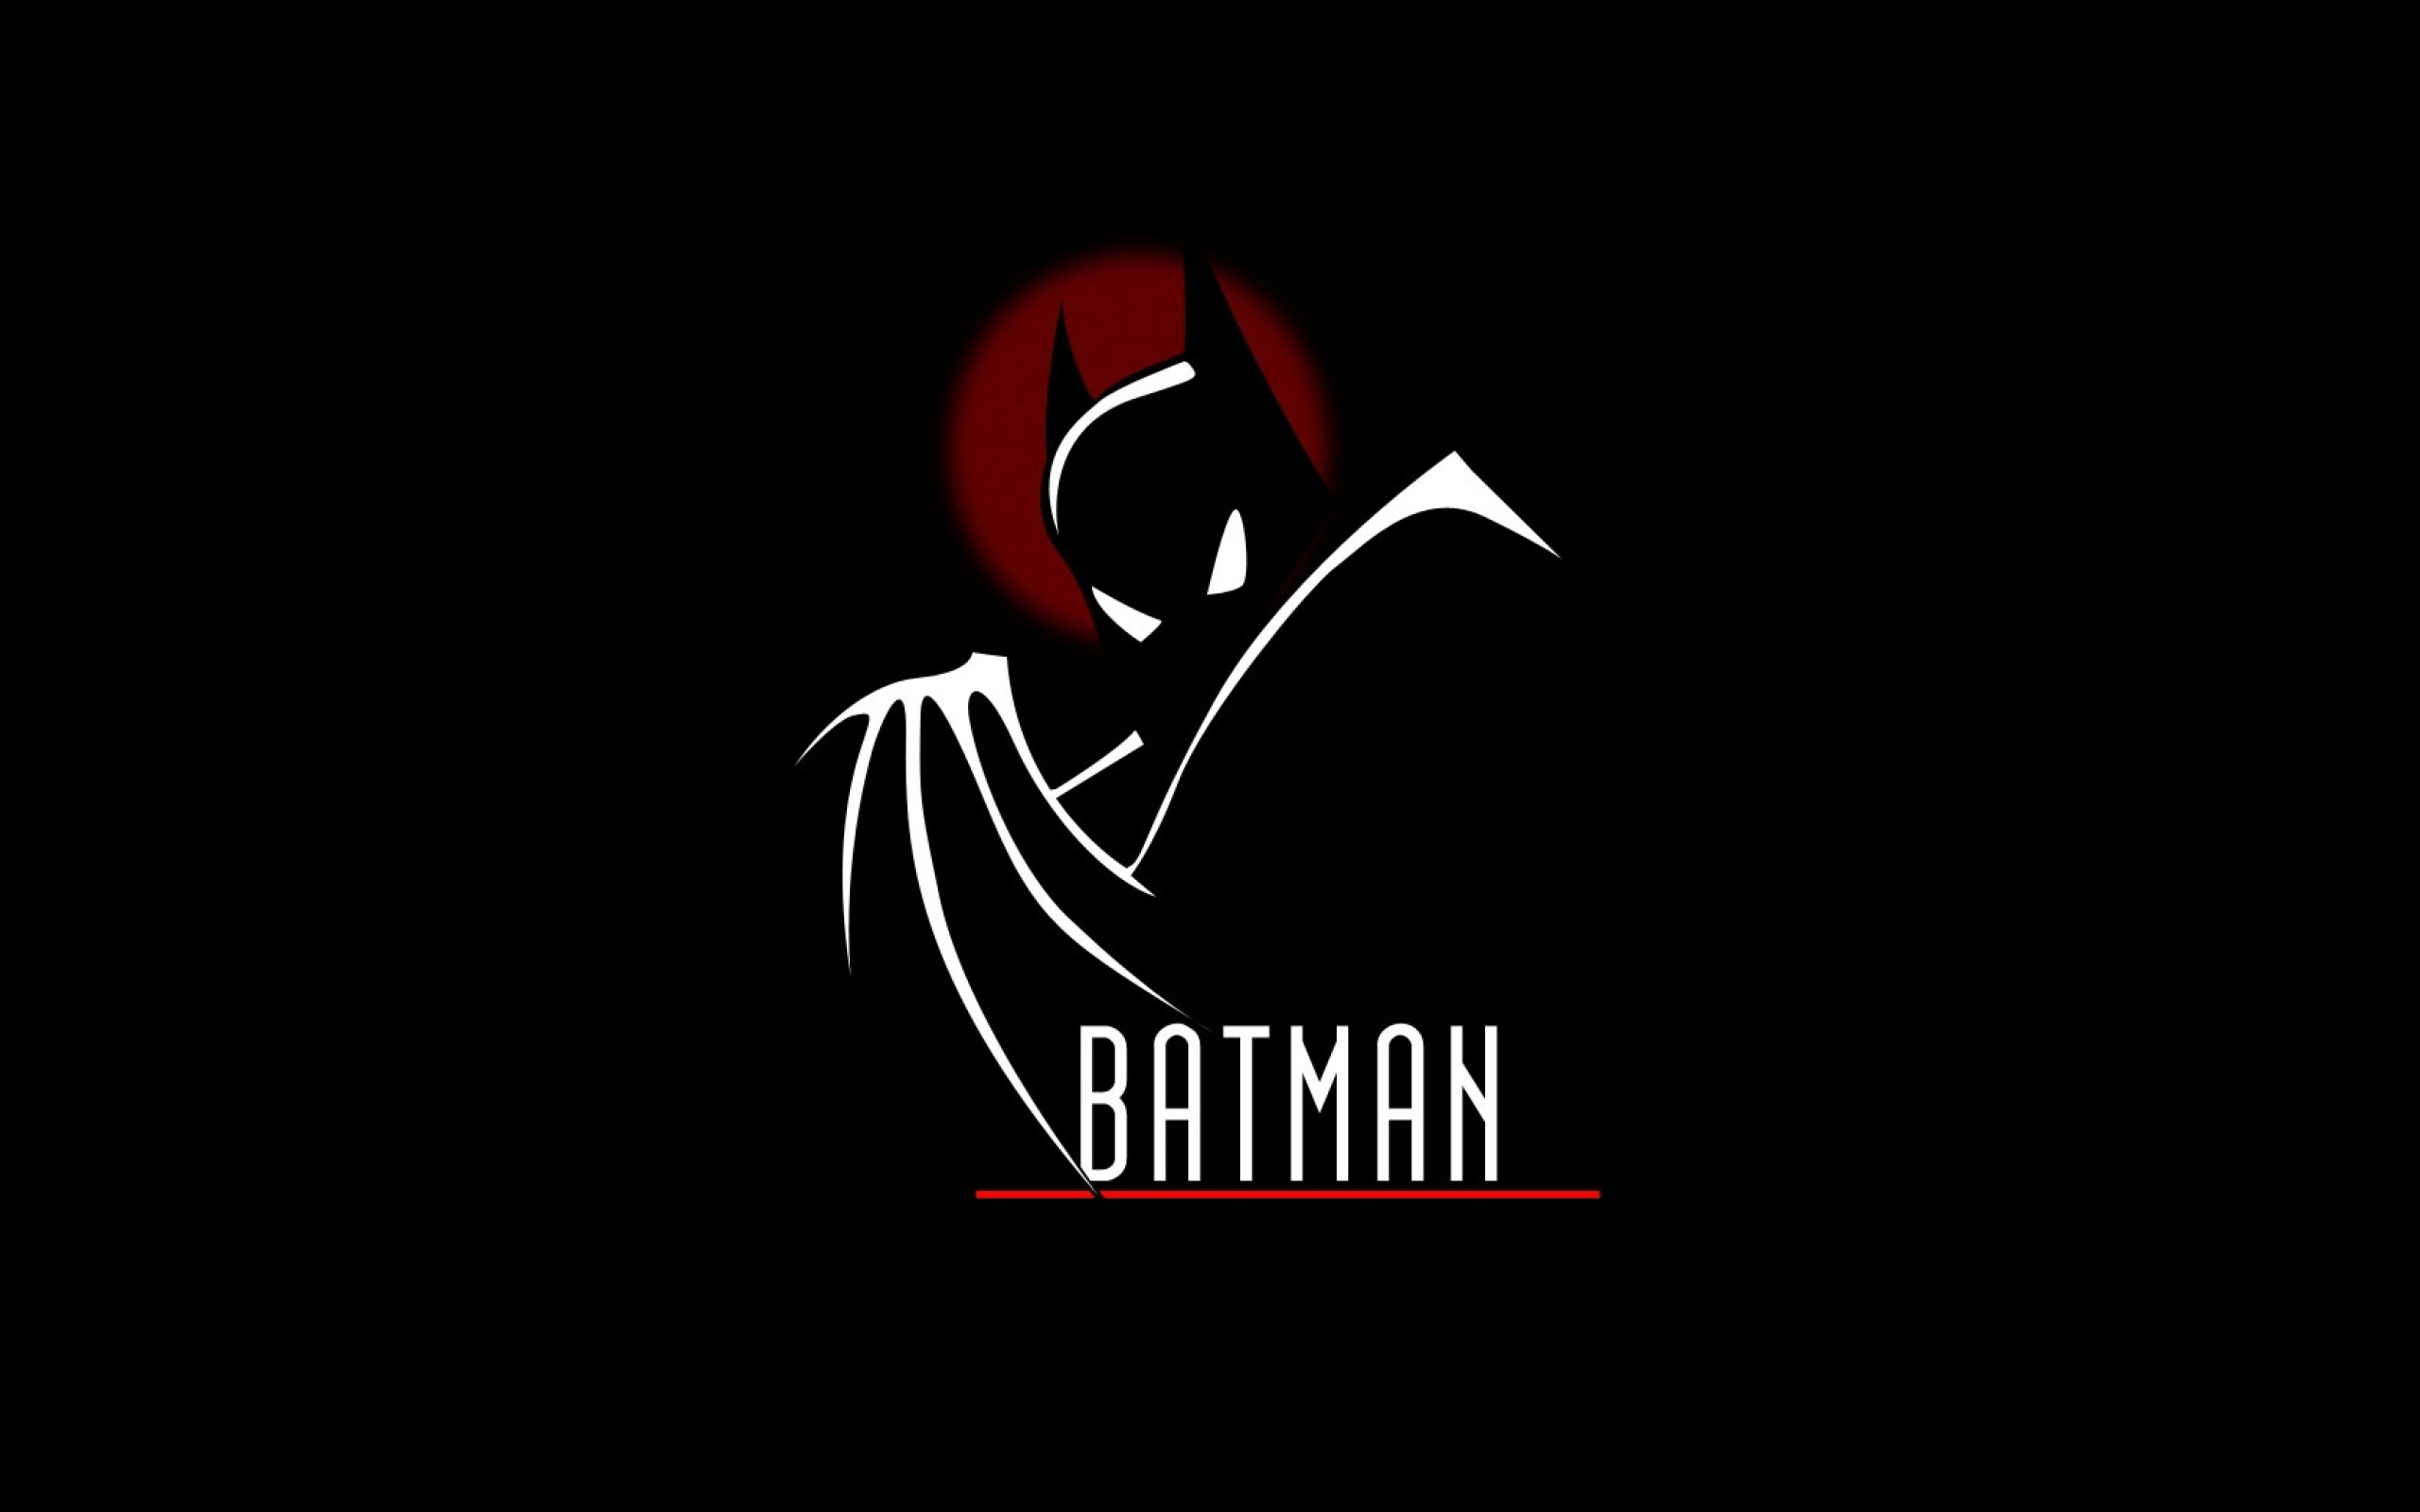 2560x1600 Images Of Batman Animated